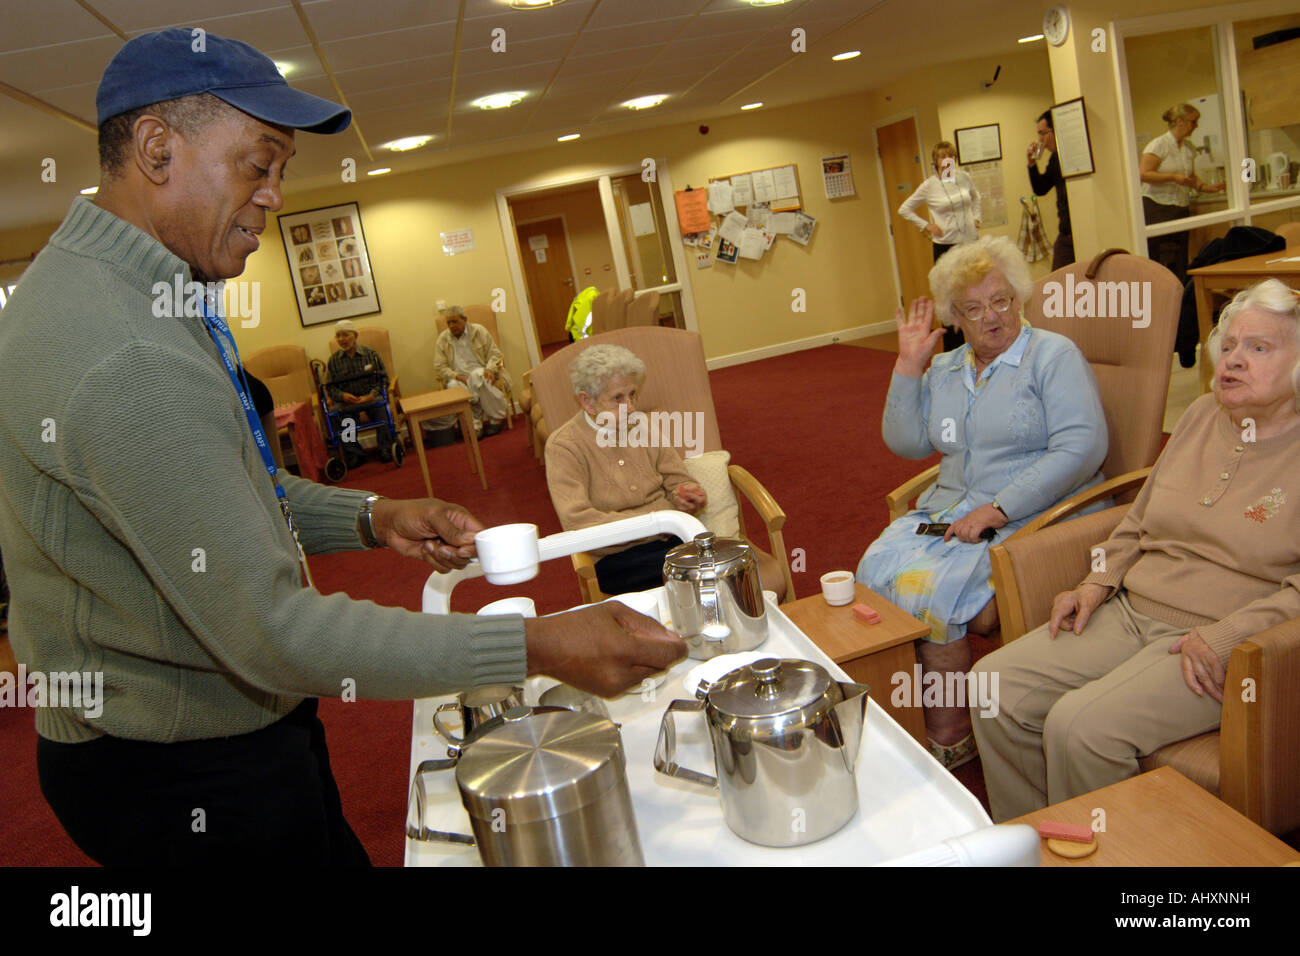 A Care Assistant serves tea to elderly people in a multi